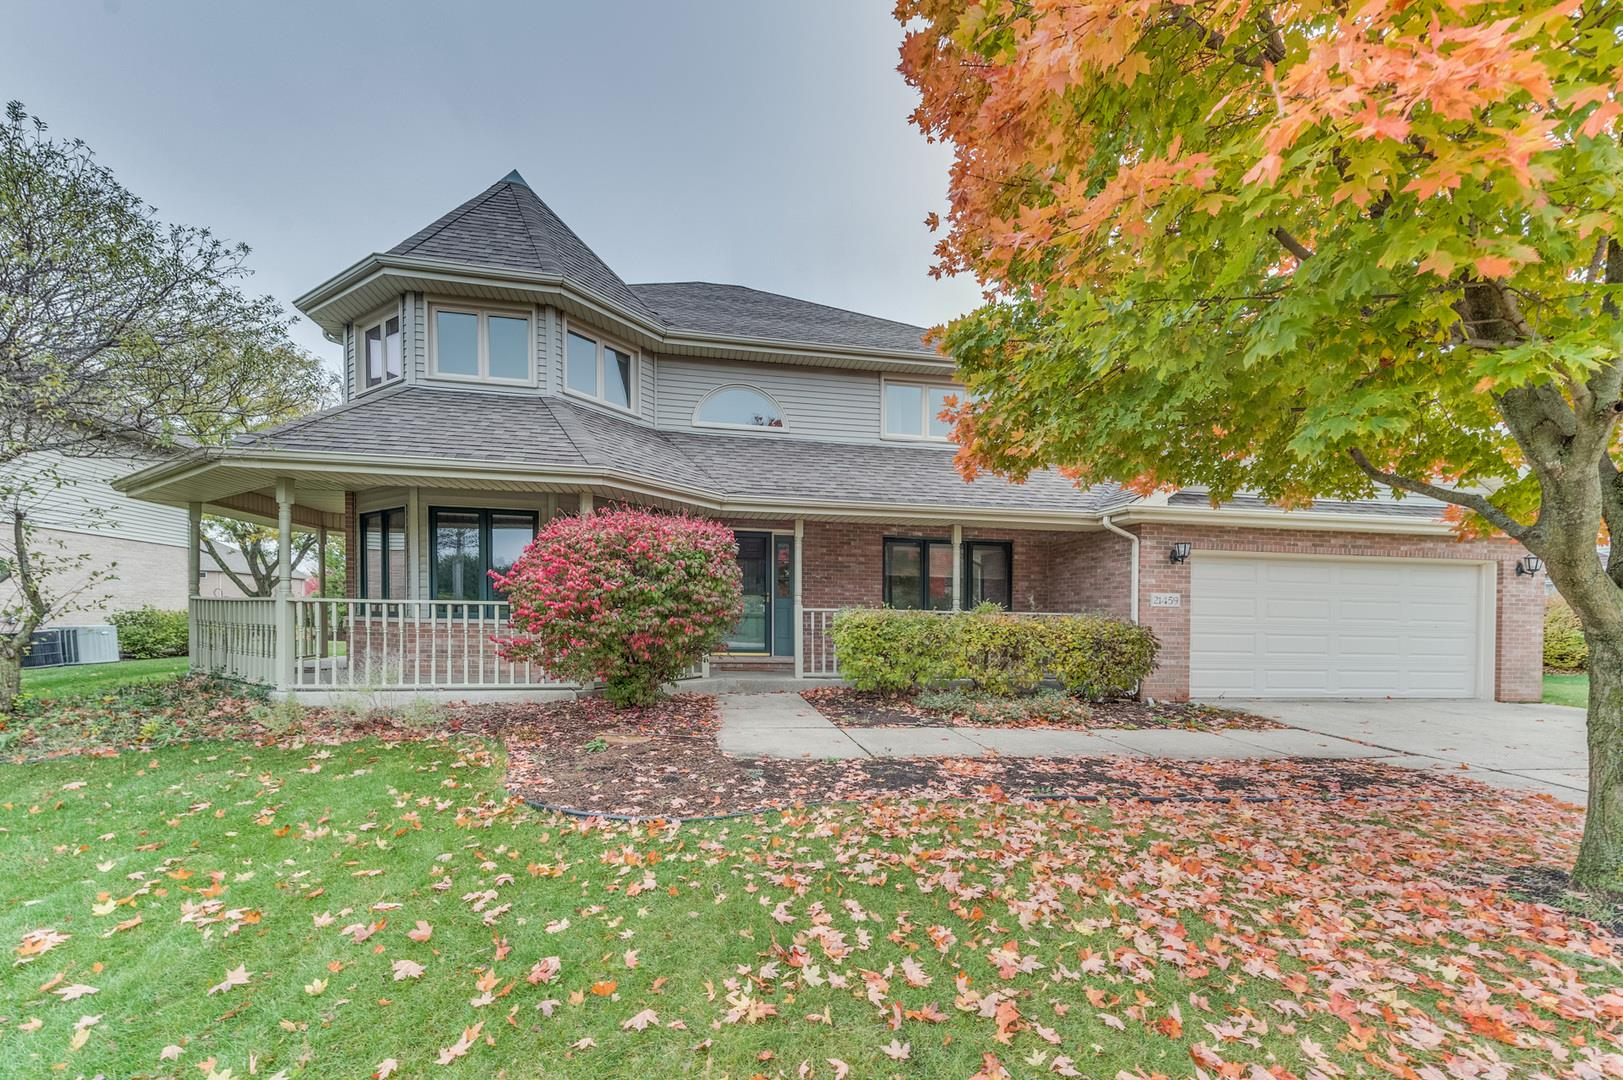 21459 92nd Avenue, Frankfort, IL 60423 - #: 10915974